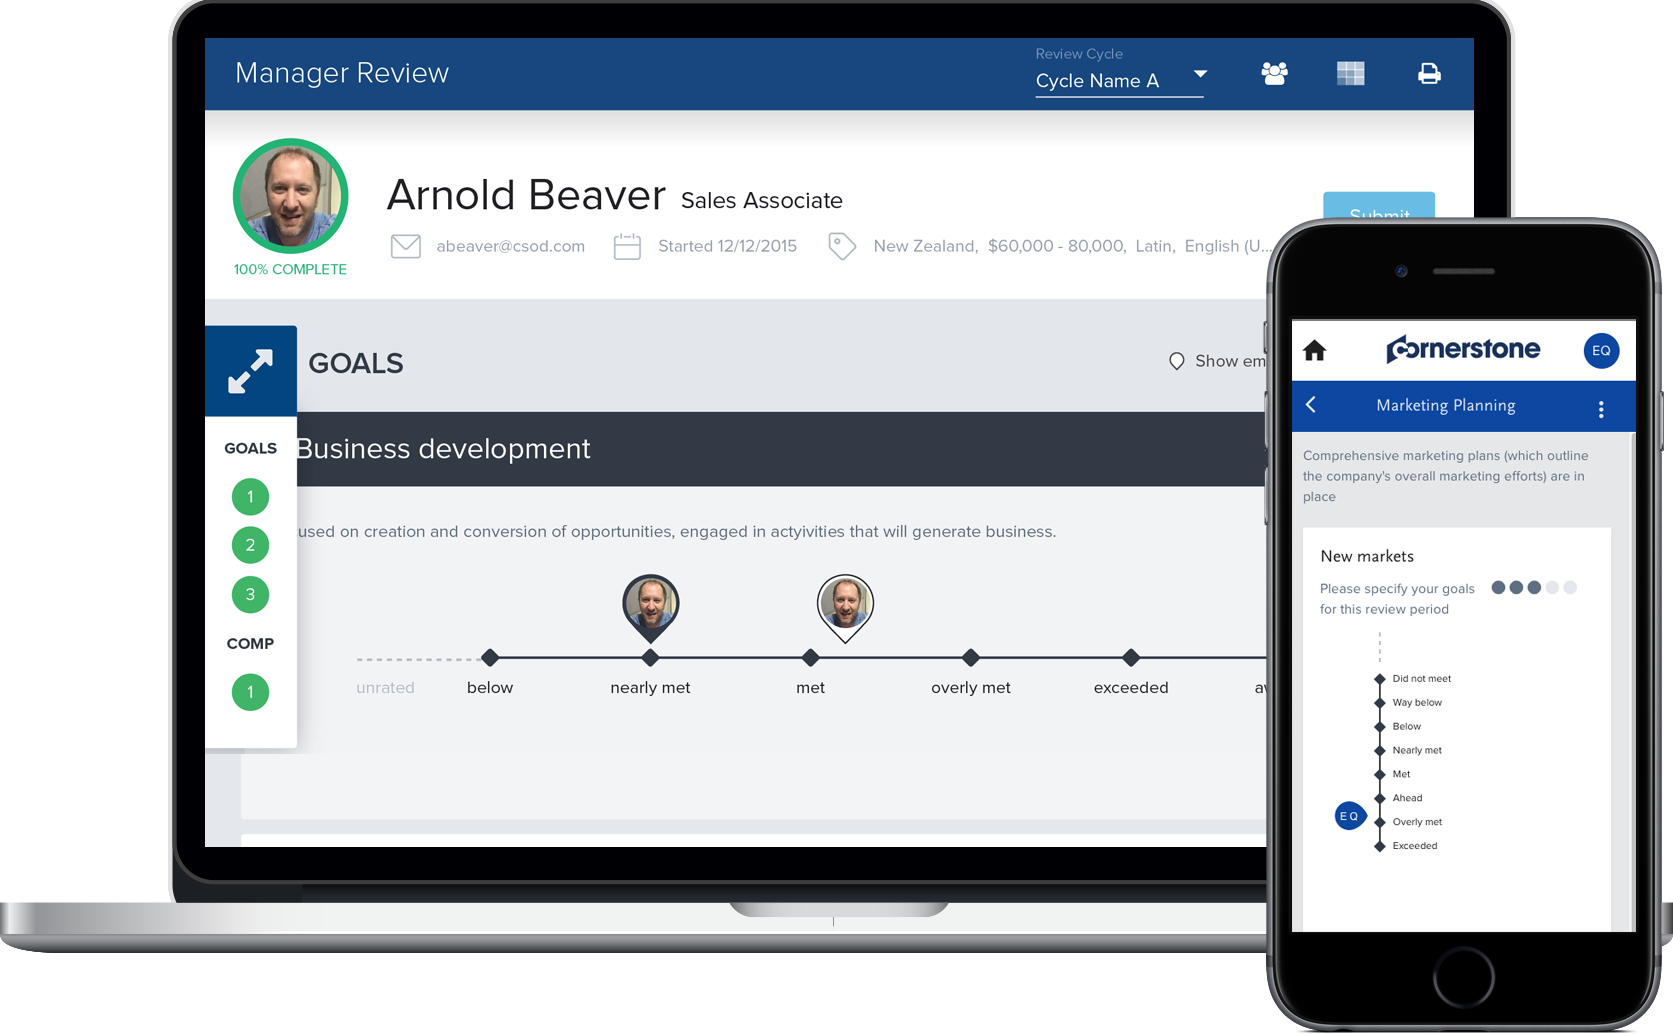 Intuitive, visual performance management. Goal setting with role-based goals and competencies. Includes self- and manager reviews, overall scores and manager comments.